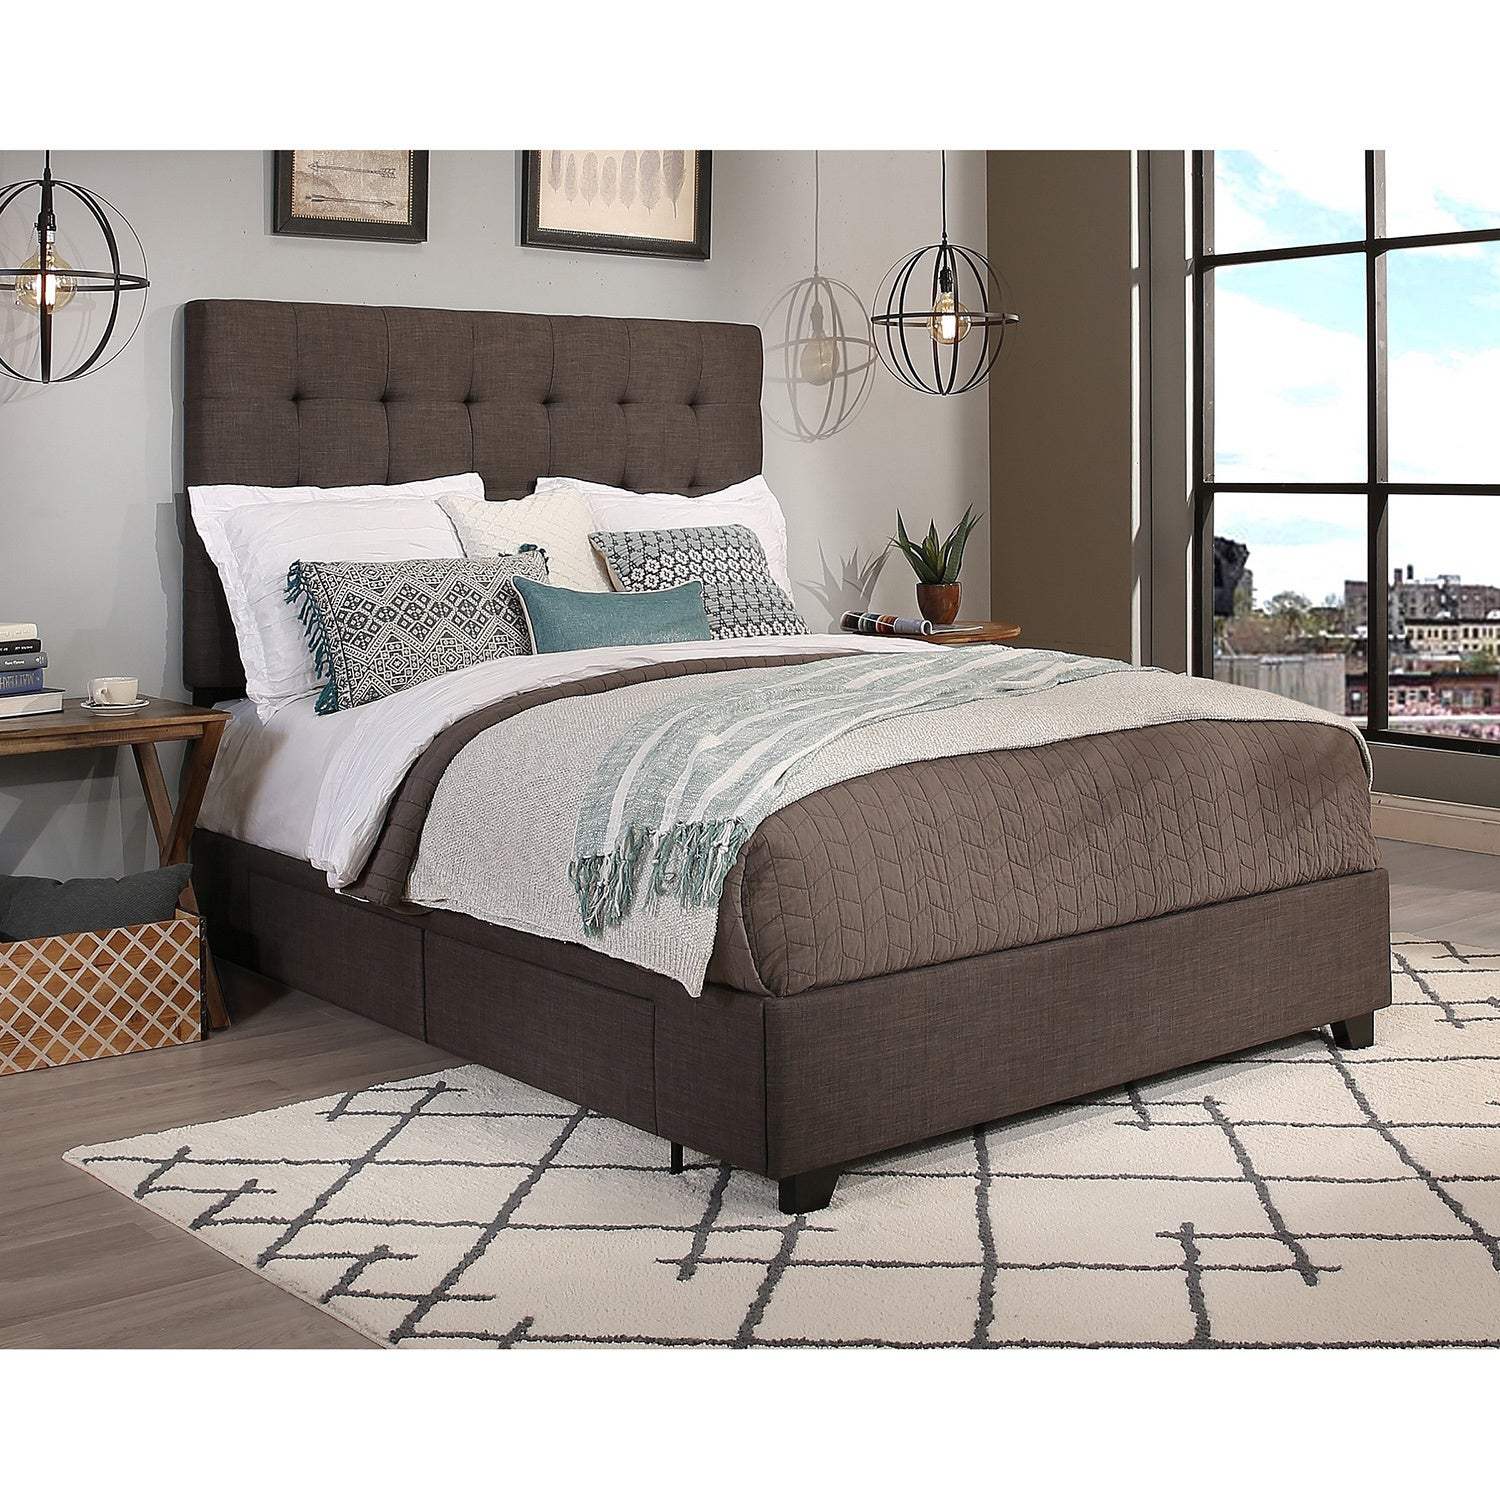 how to make headboard size grey leather blue sorrentos fabric of padded velvet gray head charcoal full bistro wingback upholstered queen custom home white headboards types brown tufted